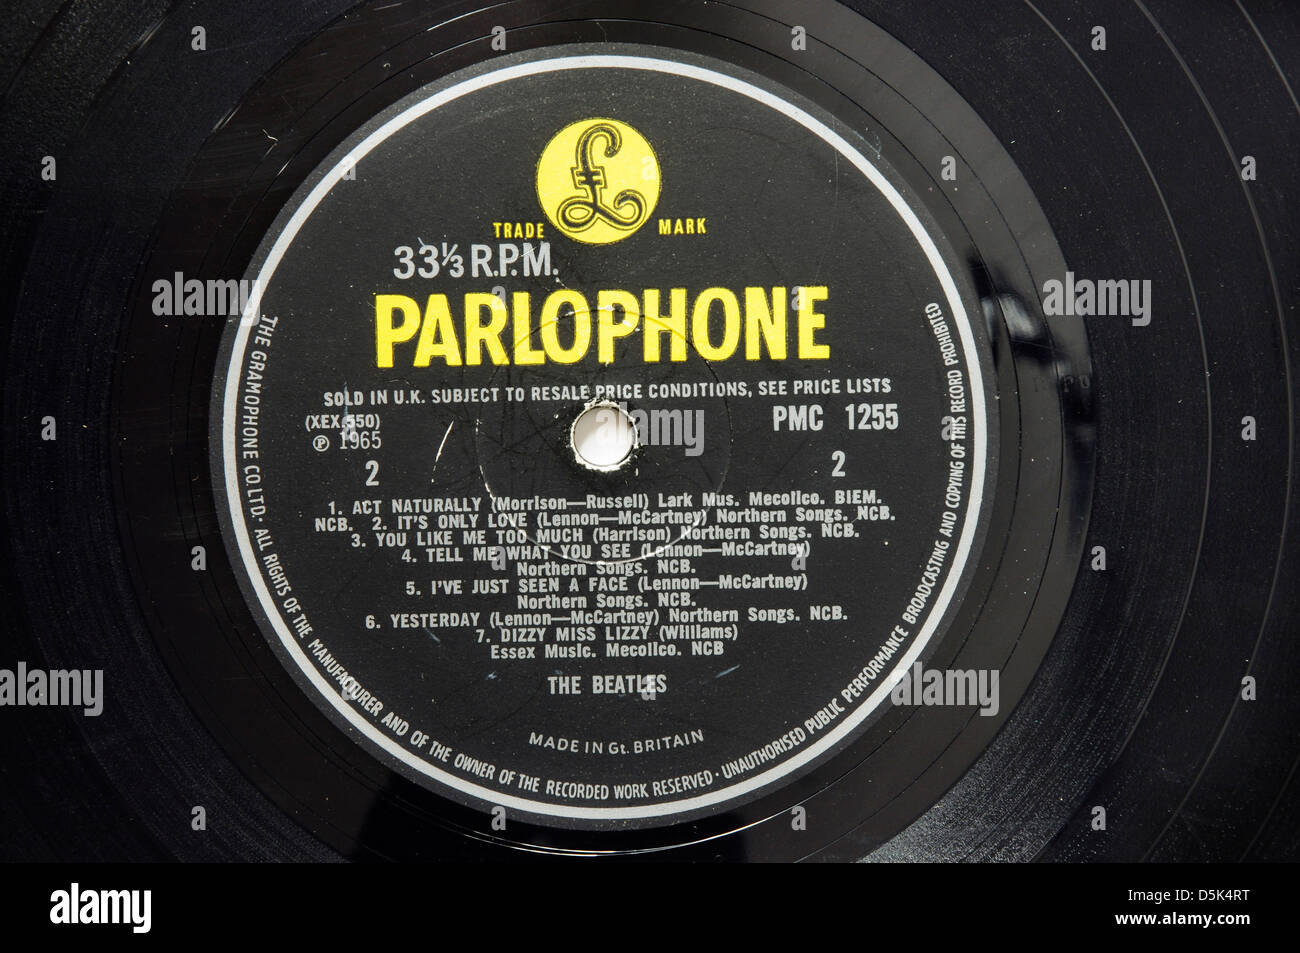 The Beatles Help record label - Stock Image